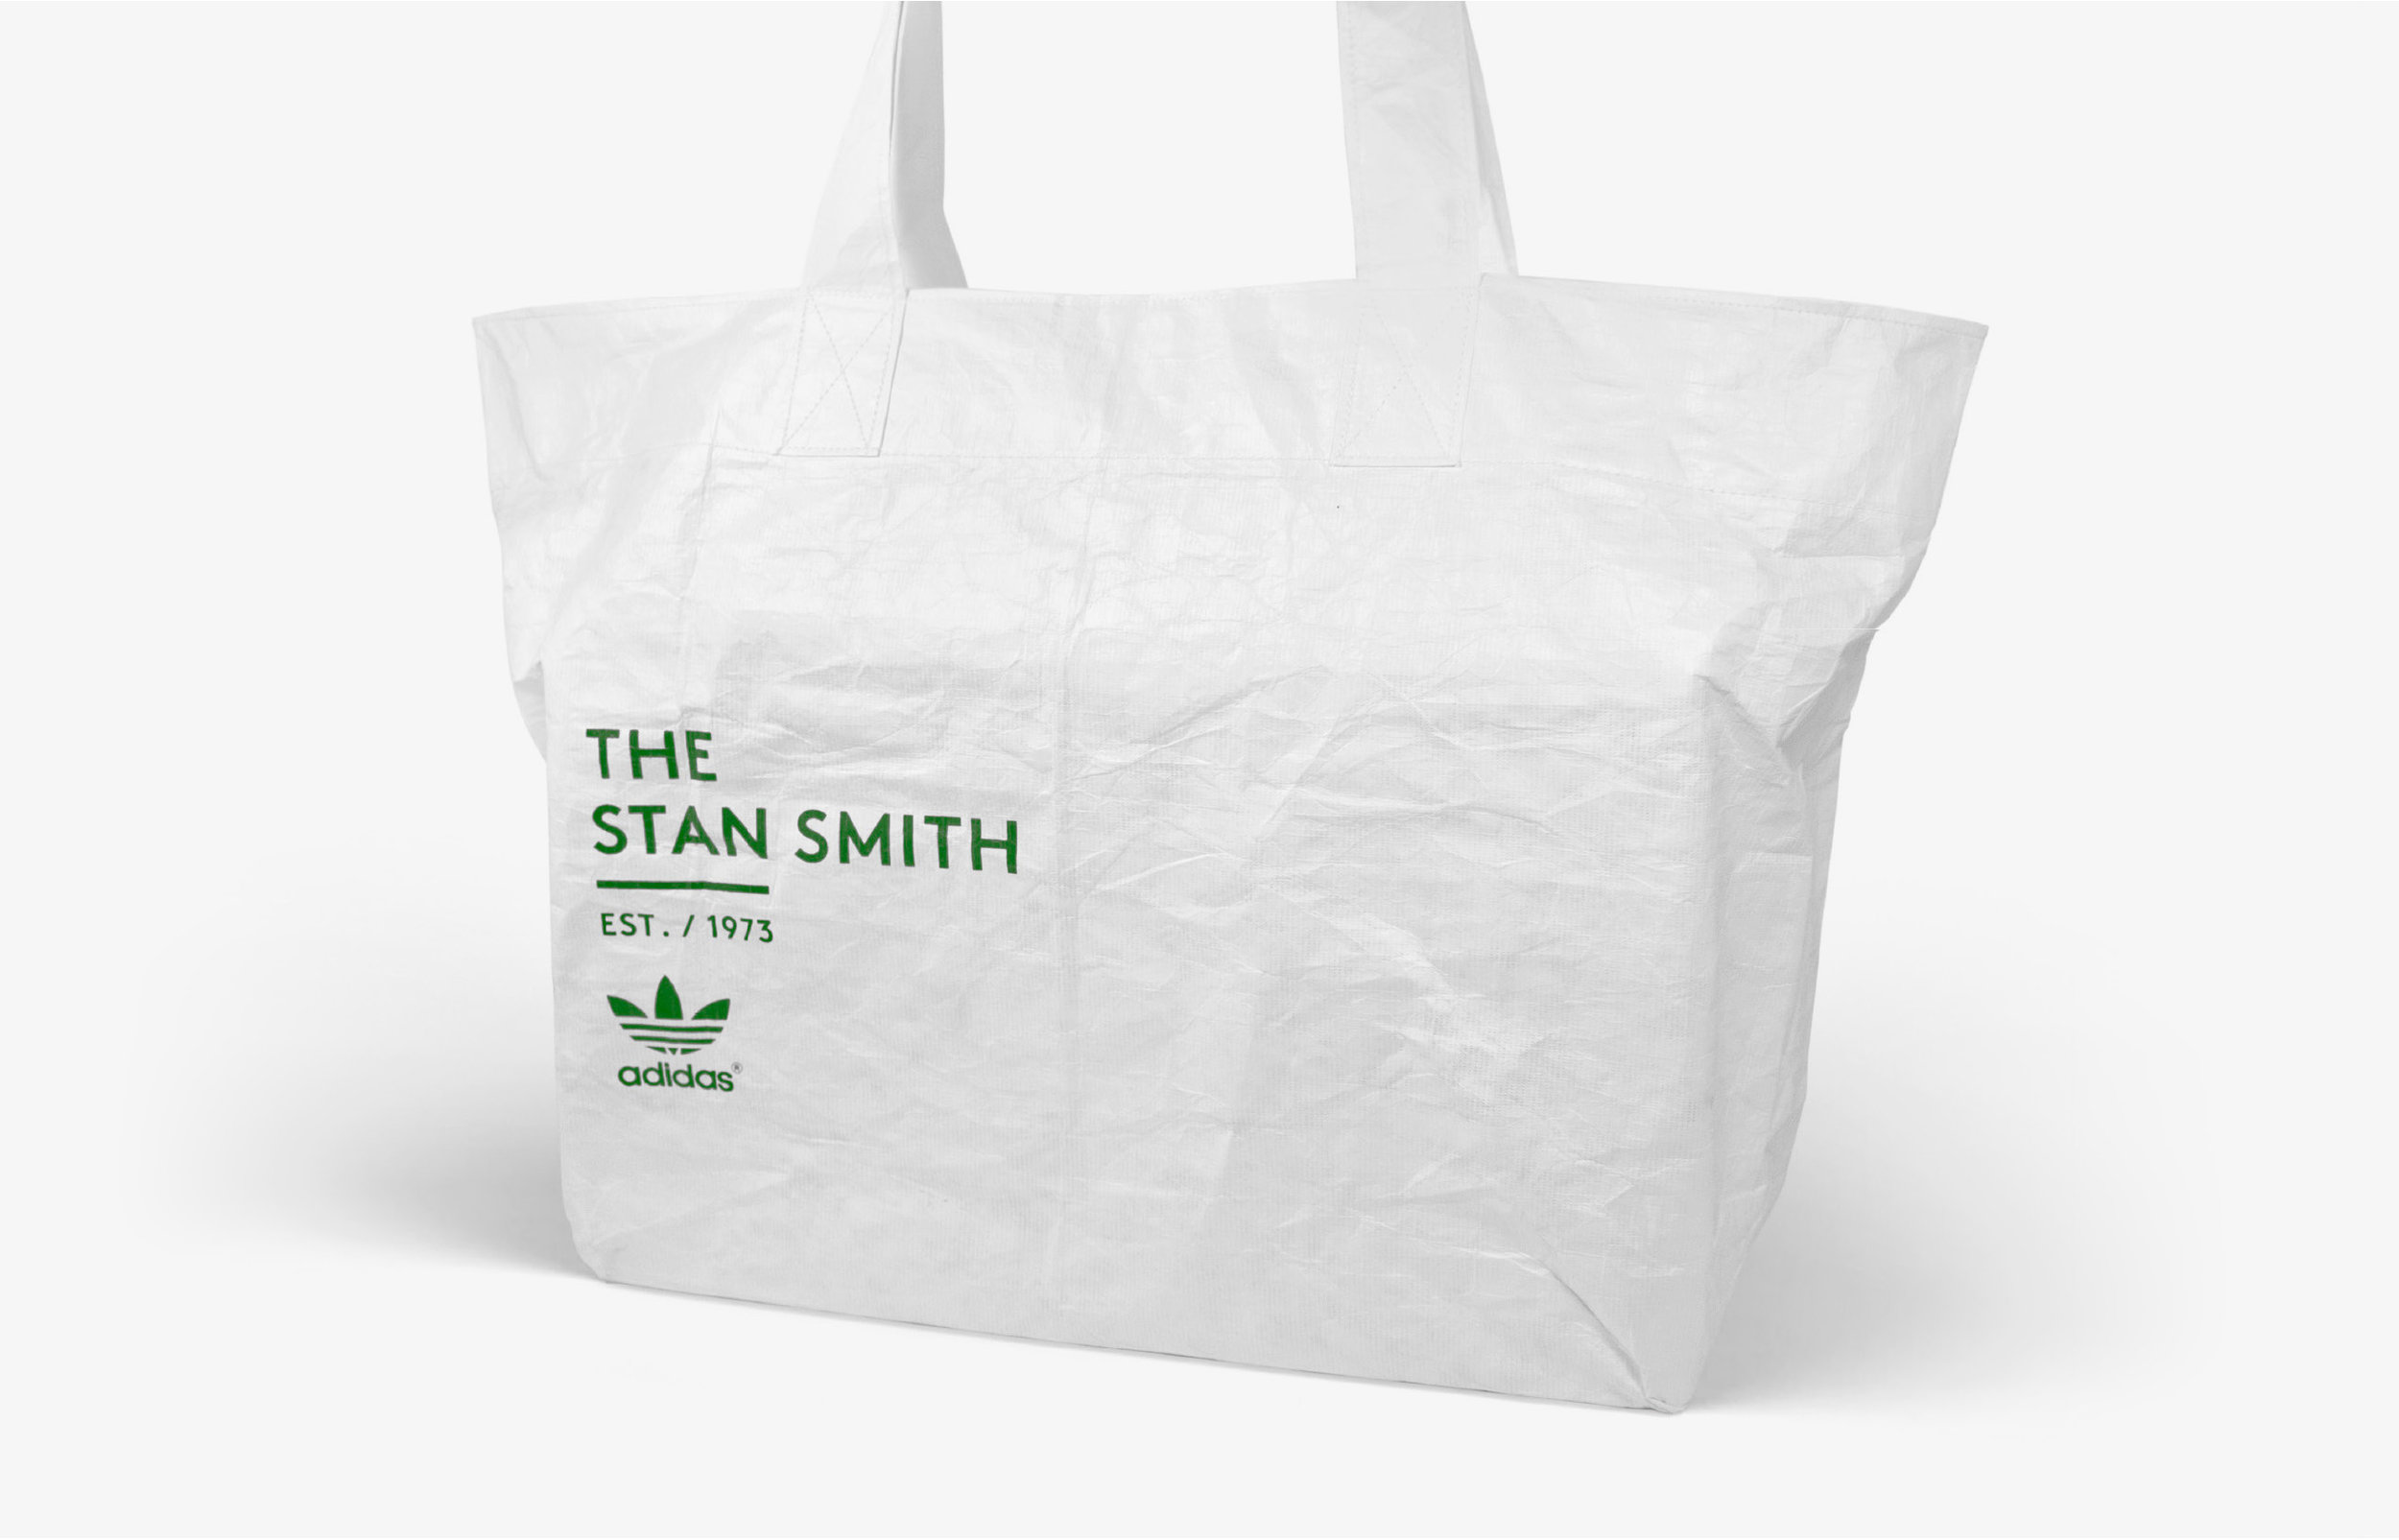 StanSmith_Packaging_1.jpg